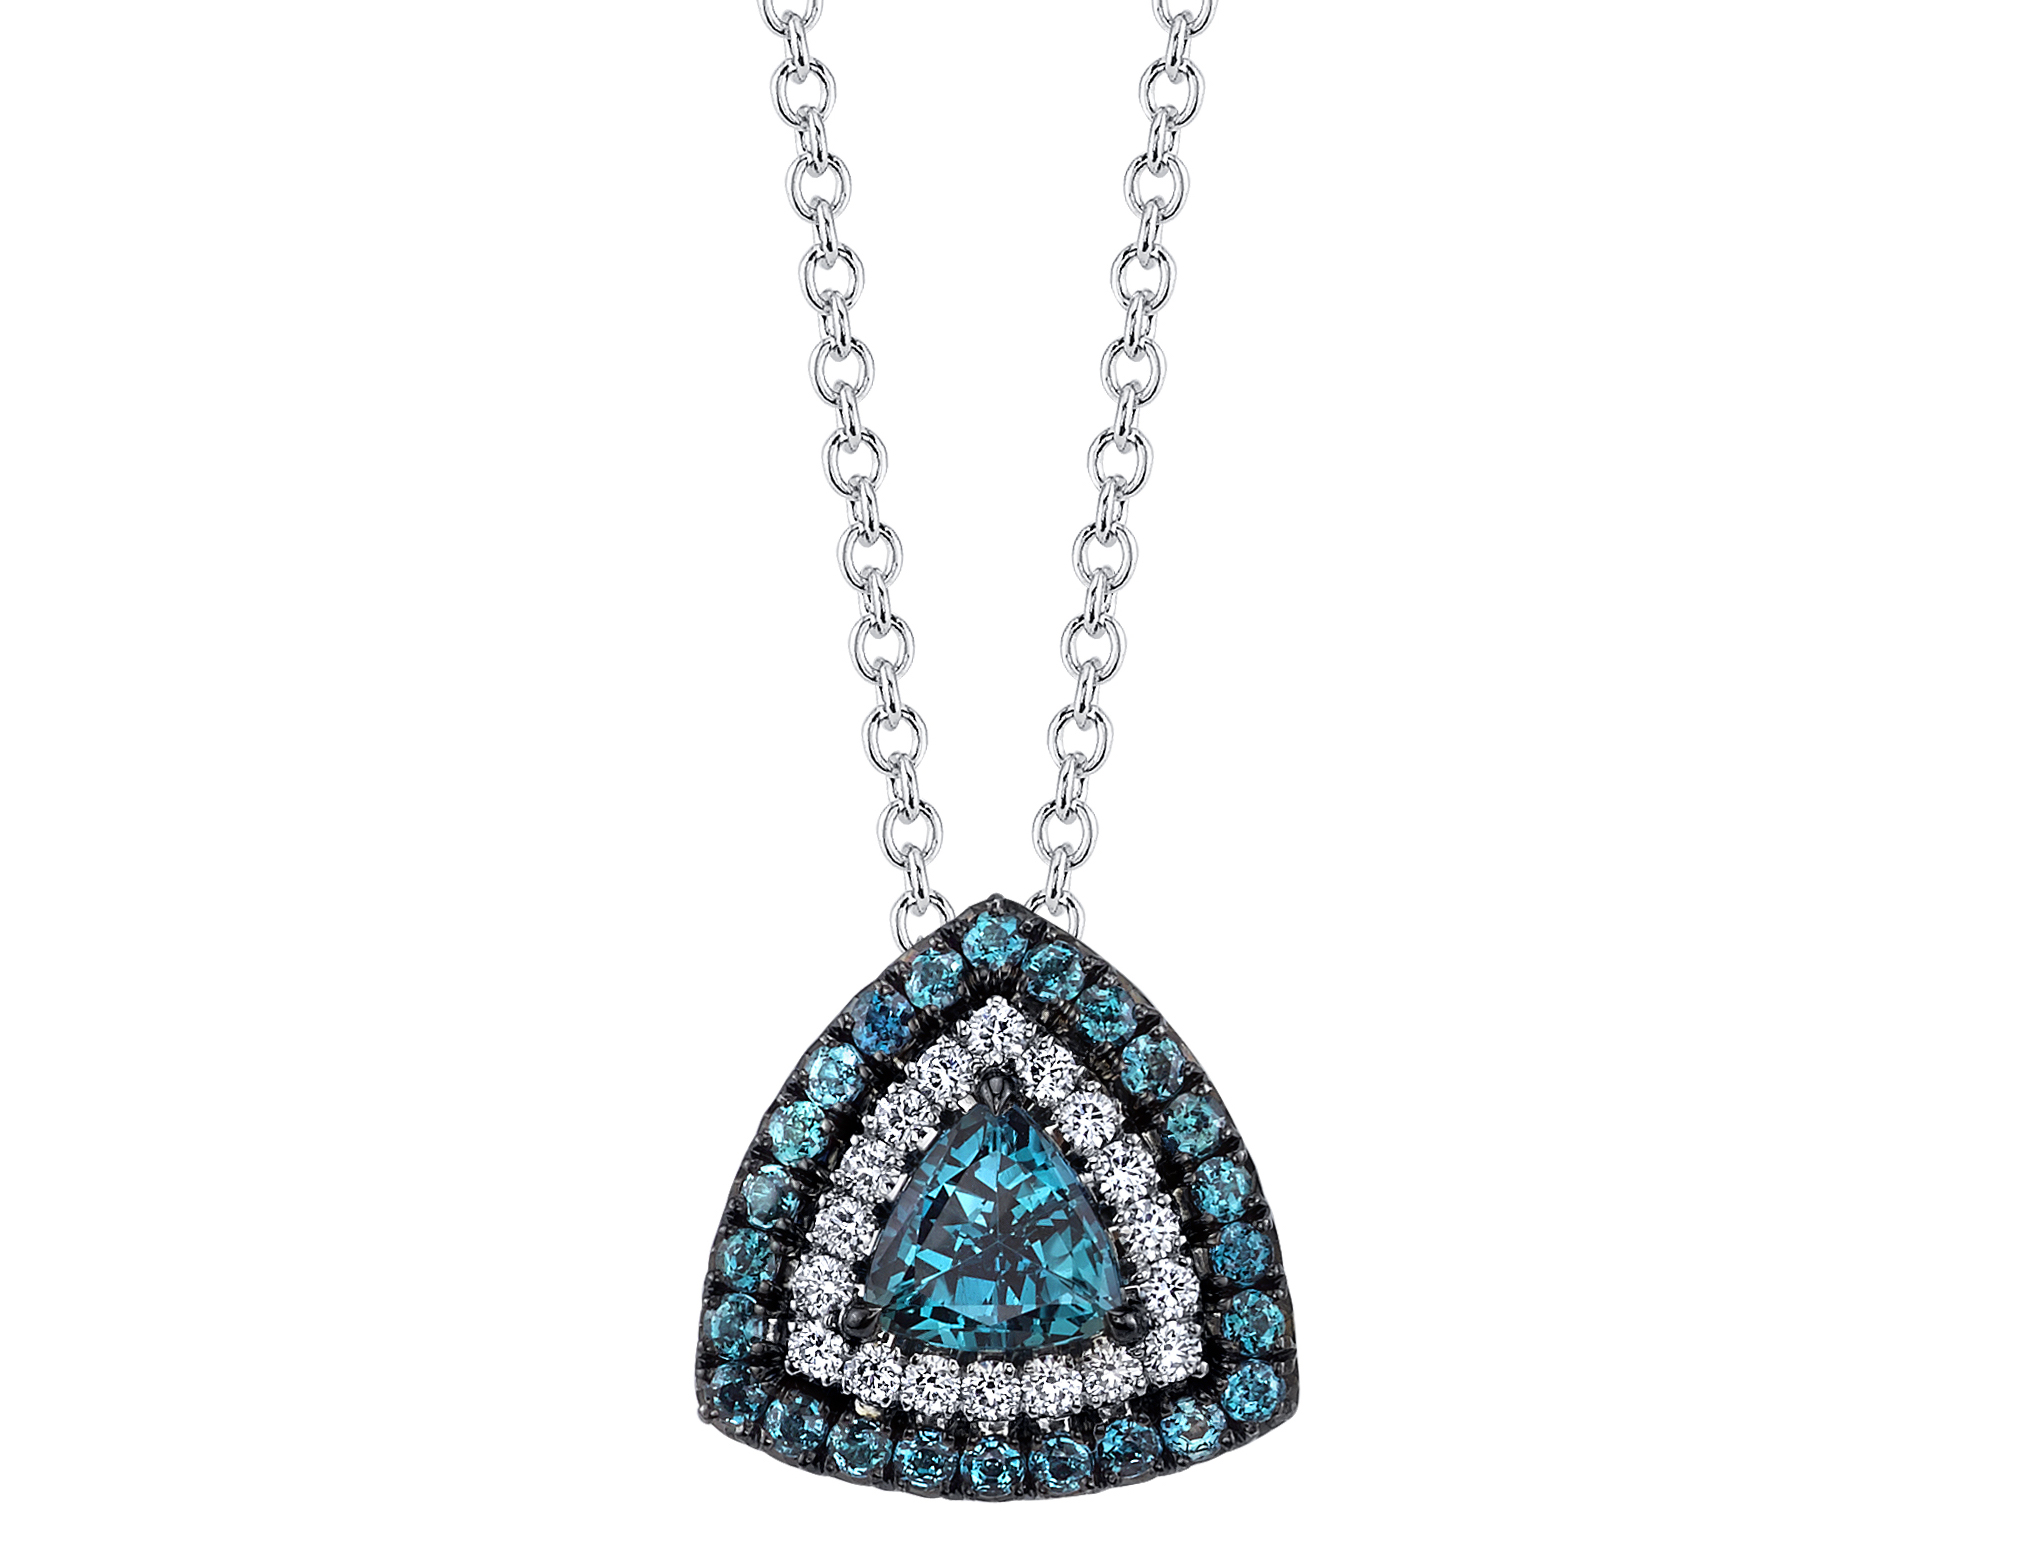 Omi Privé alexandrite Duet pendant | JCK On Your Market